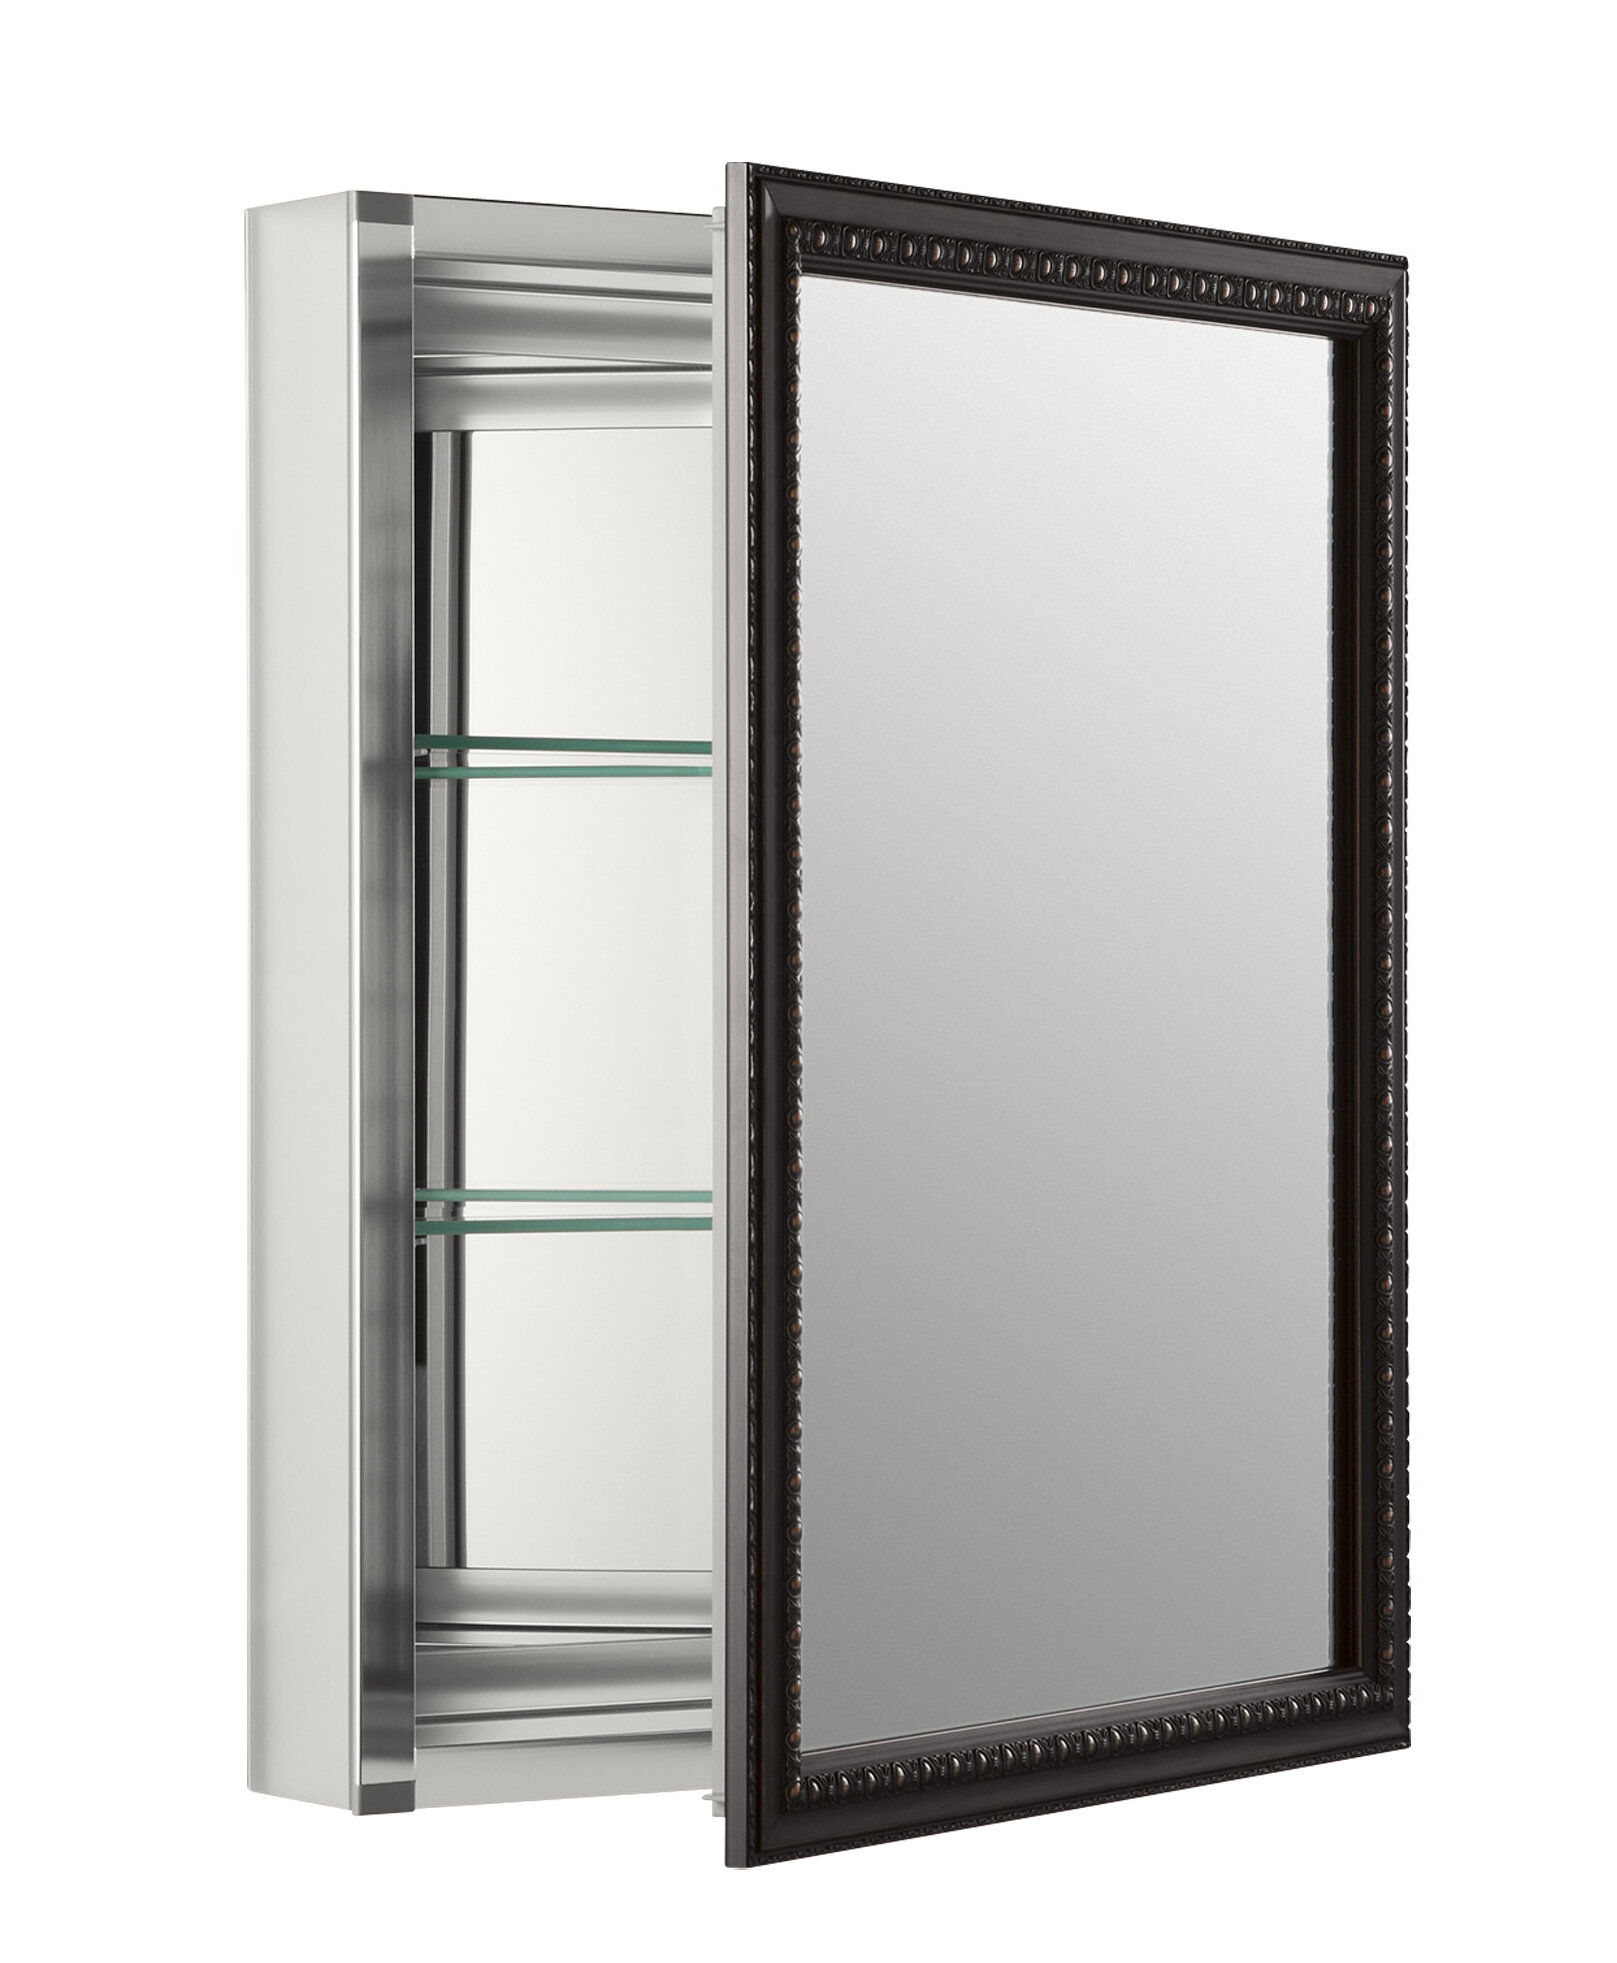 "Wall Mounted Medicine Cabinet Mirror k-2967-br1 kohler 20"" x 26"" wall mount mirrored medicine cabinet"